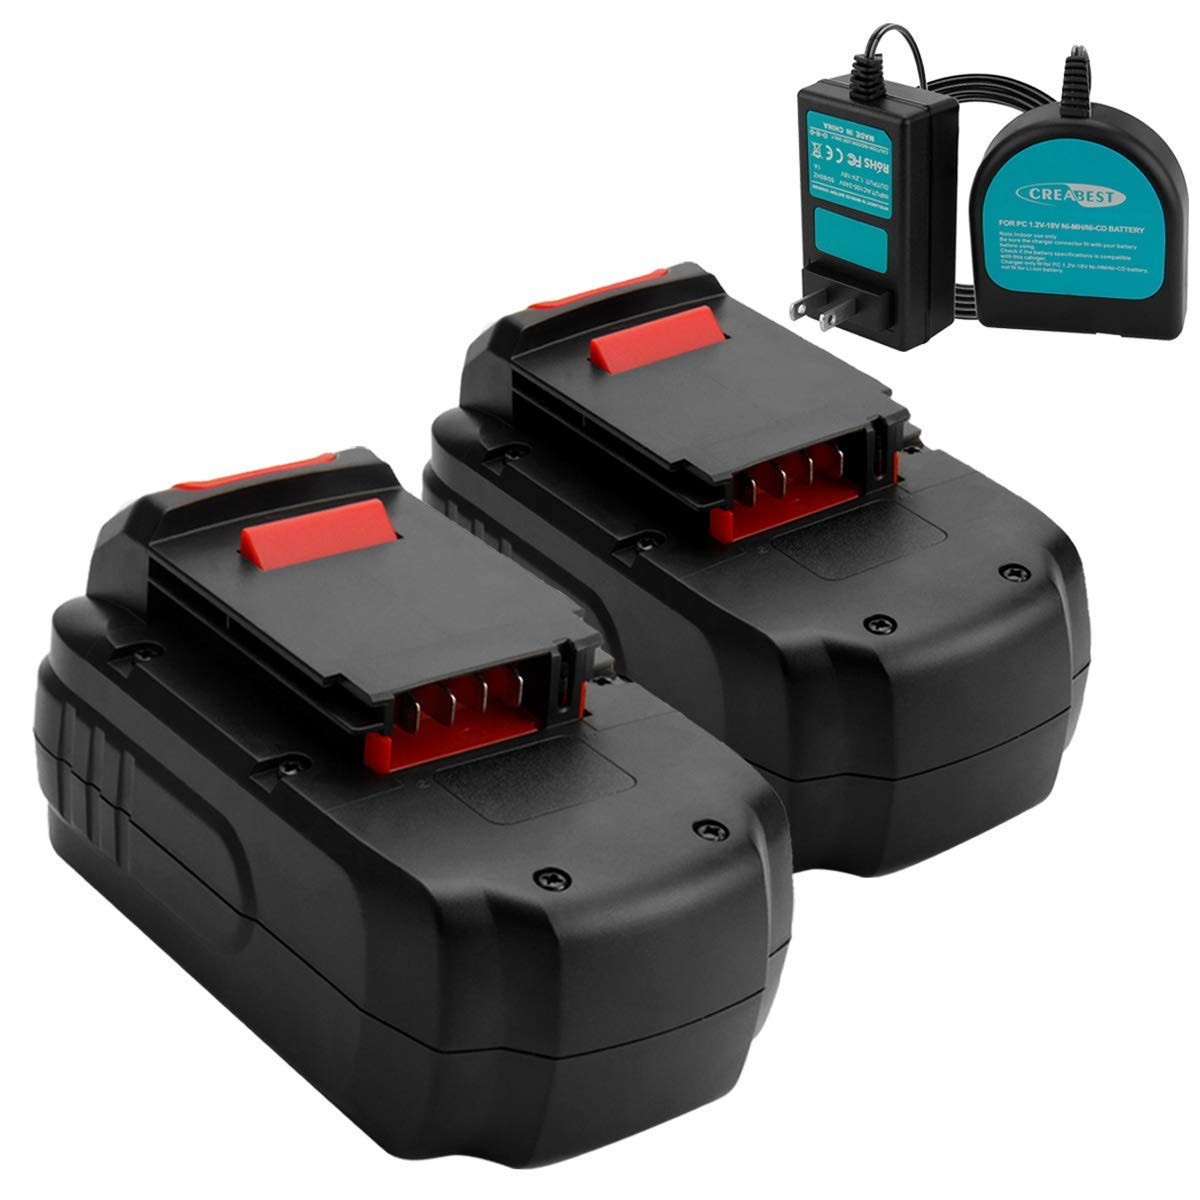 Creabest New 2Packs 3.5Ah Ni-MH for Porter Cable 18V Battery PC18B PC18B-2 PCC489N PCMVC PCXMVC PC18BLEX, Include One 1.2V-18V Ni-MH/Ni-CD Battery Charger